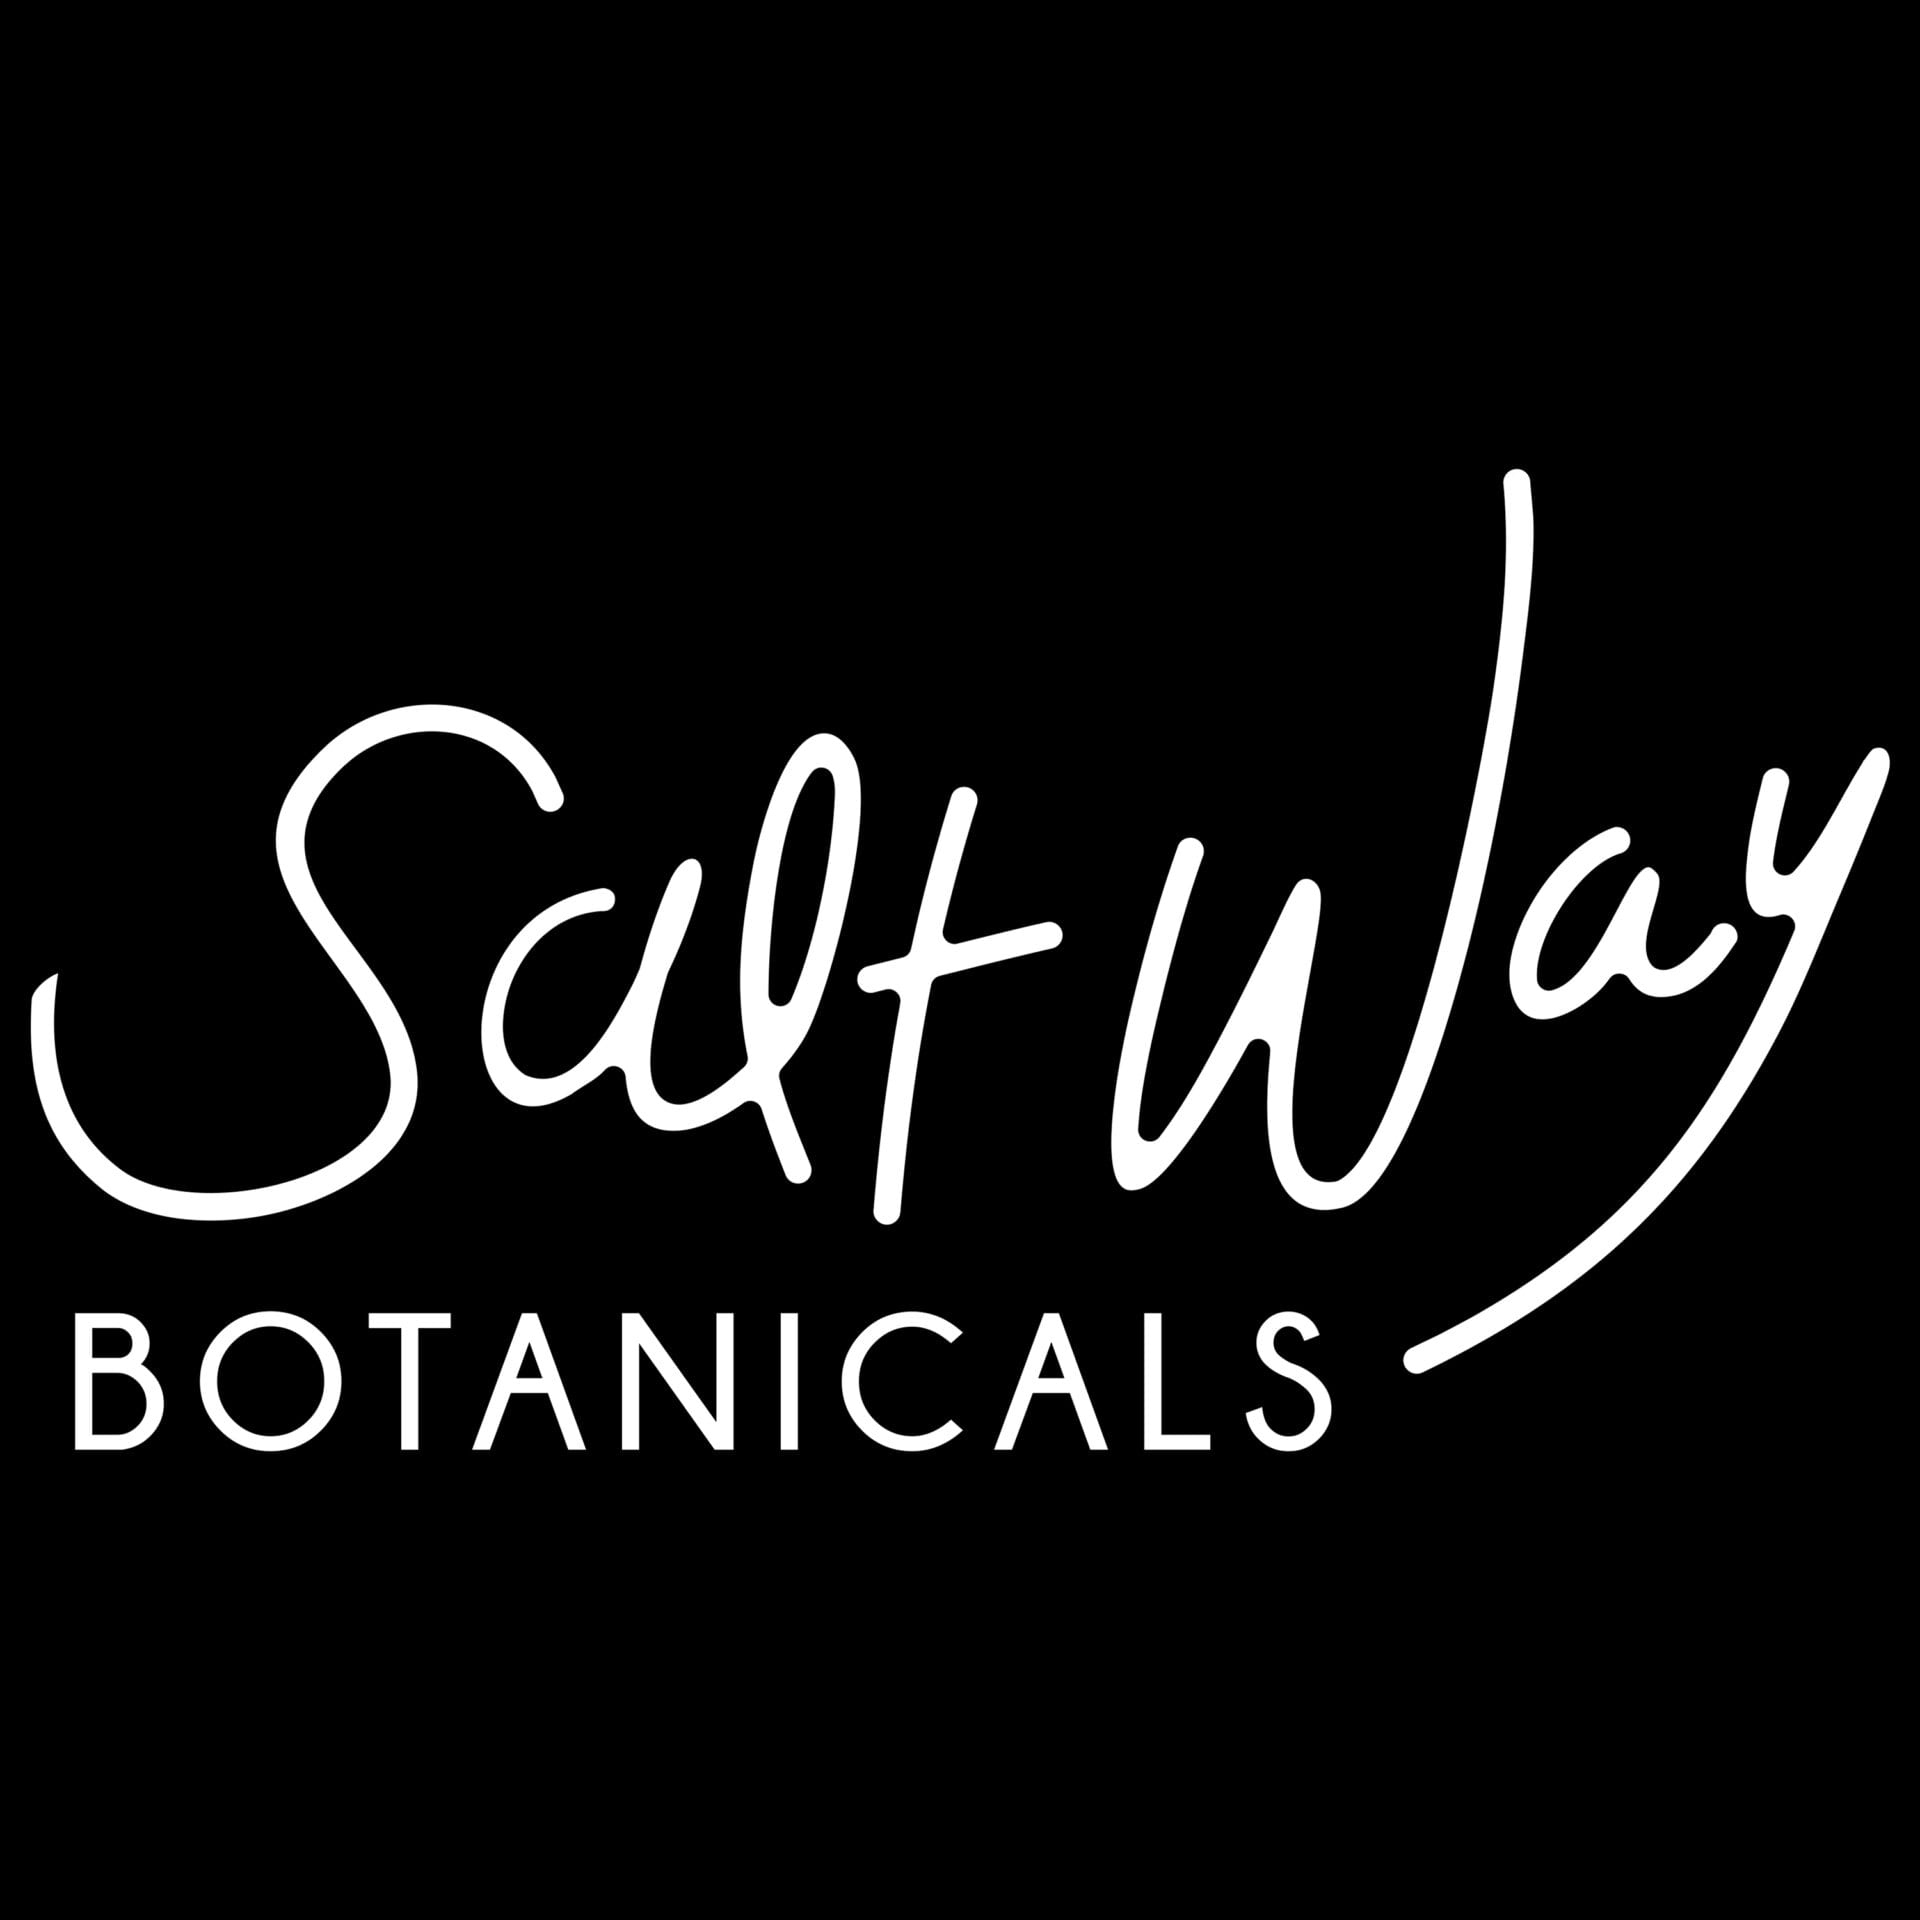 Natural Body Care Products<br><br><strong>https://www.salt-way.com/</strong>